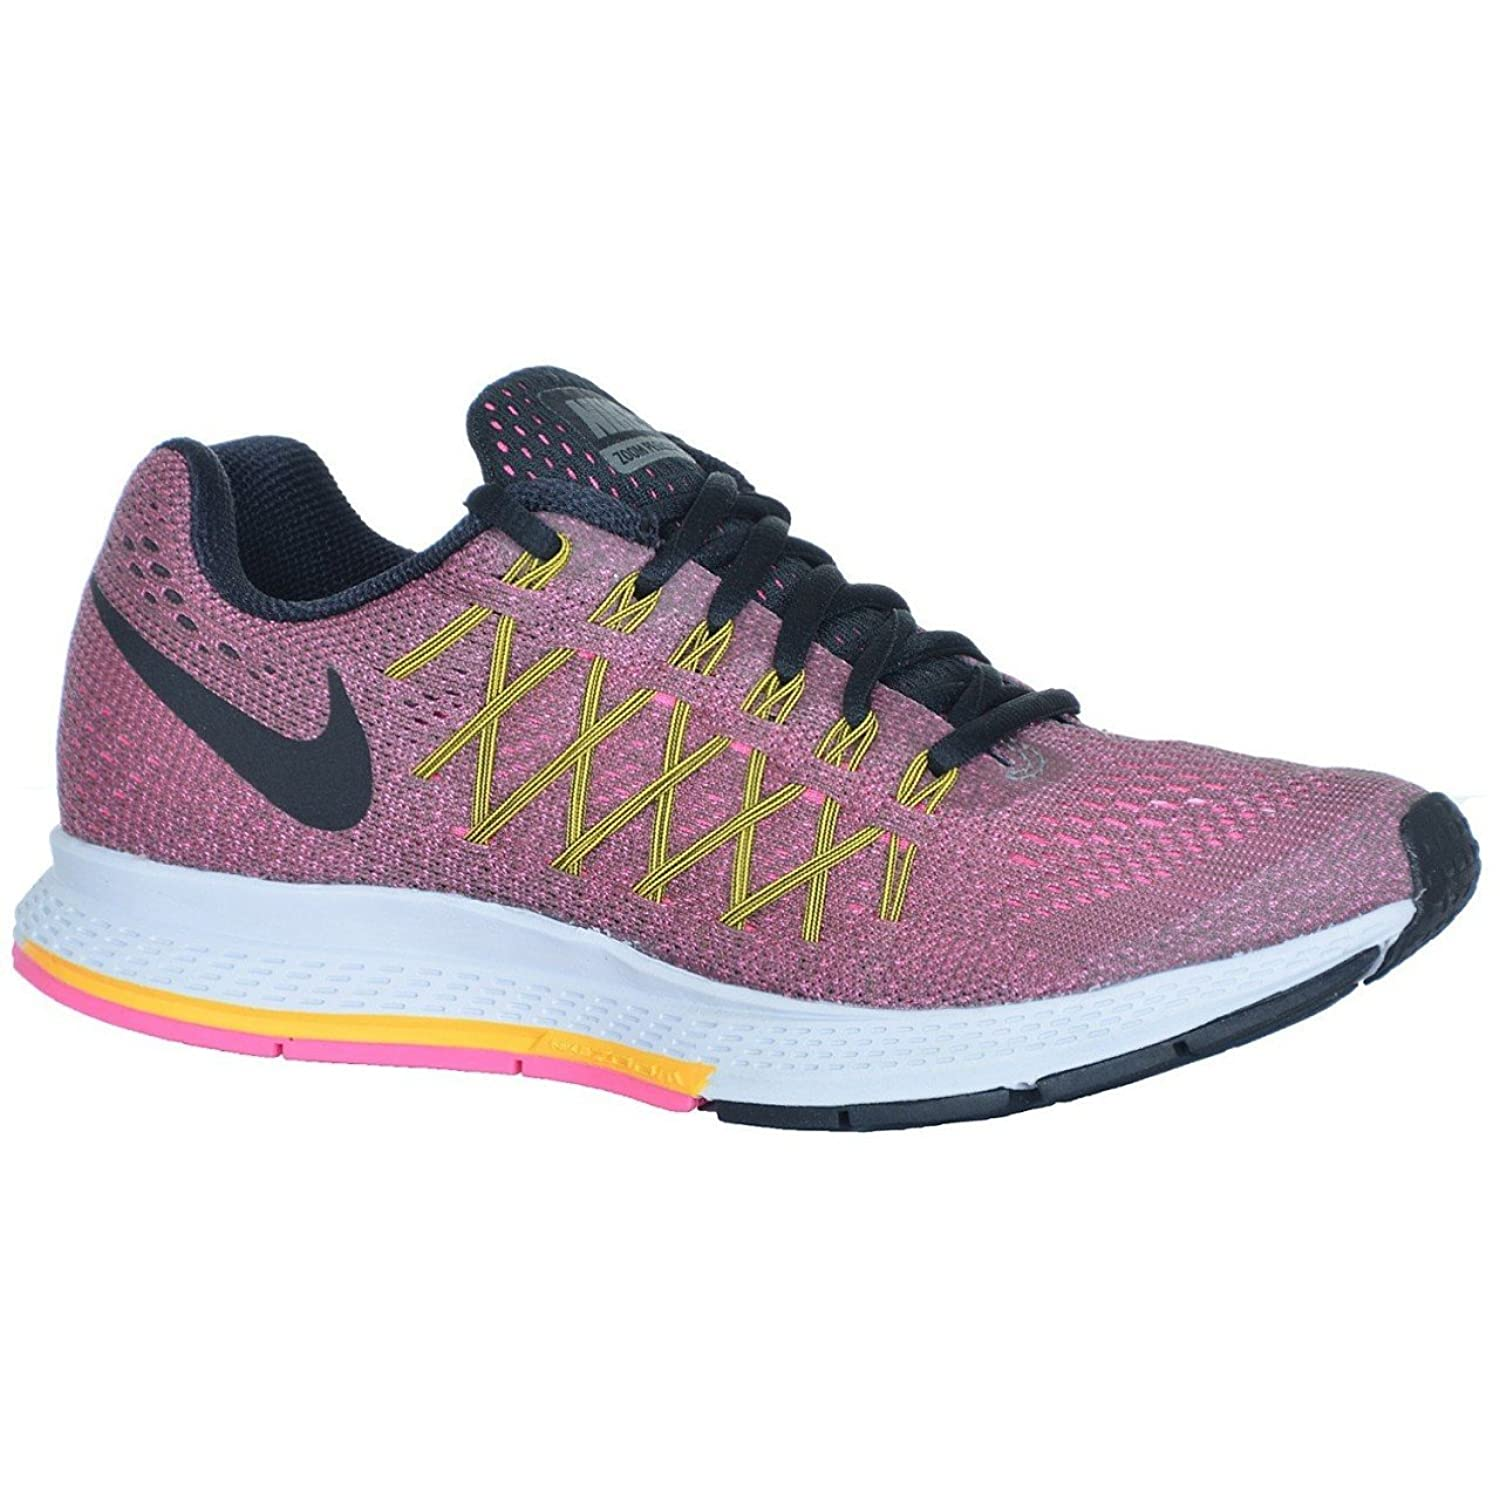 198e42537958 durable service Nike Women s Air Zoom Pegasus 32 Running Shoe - www ...